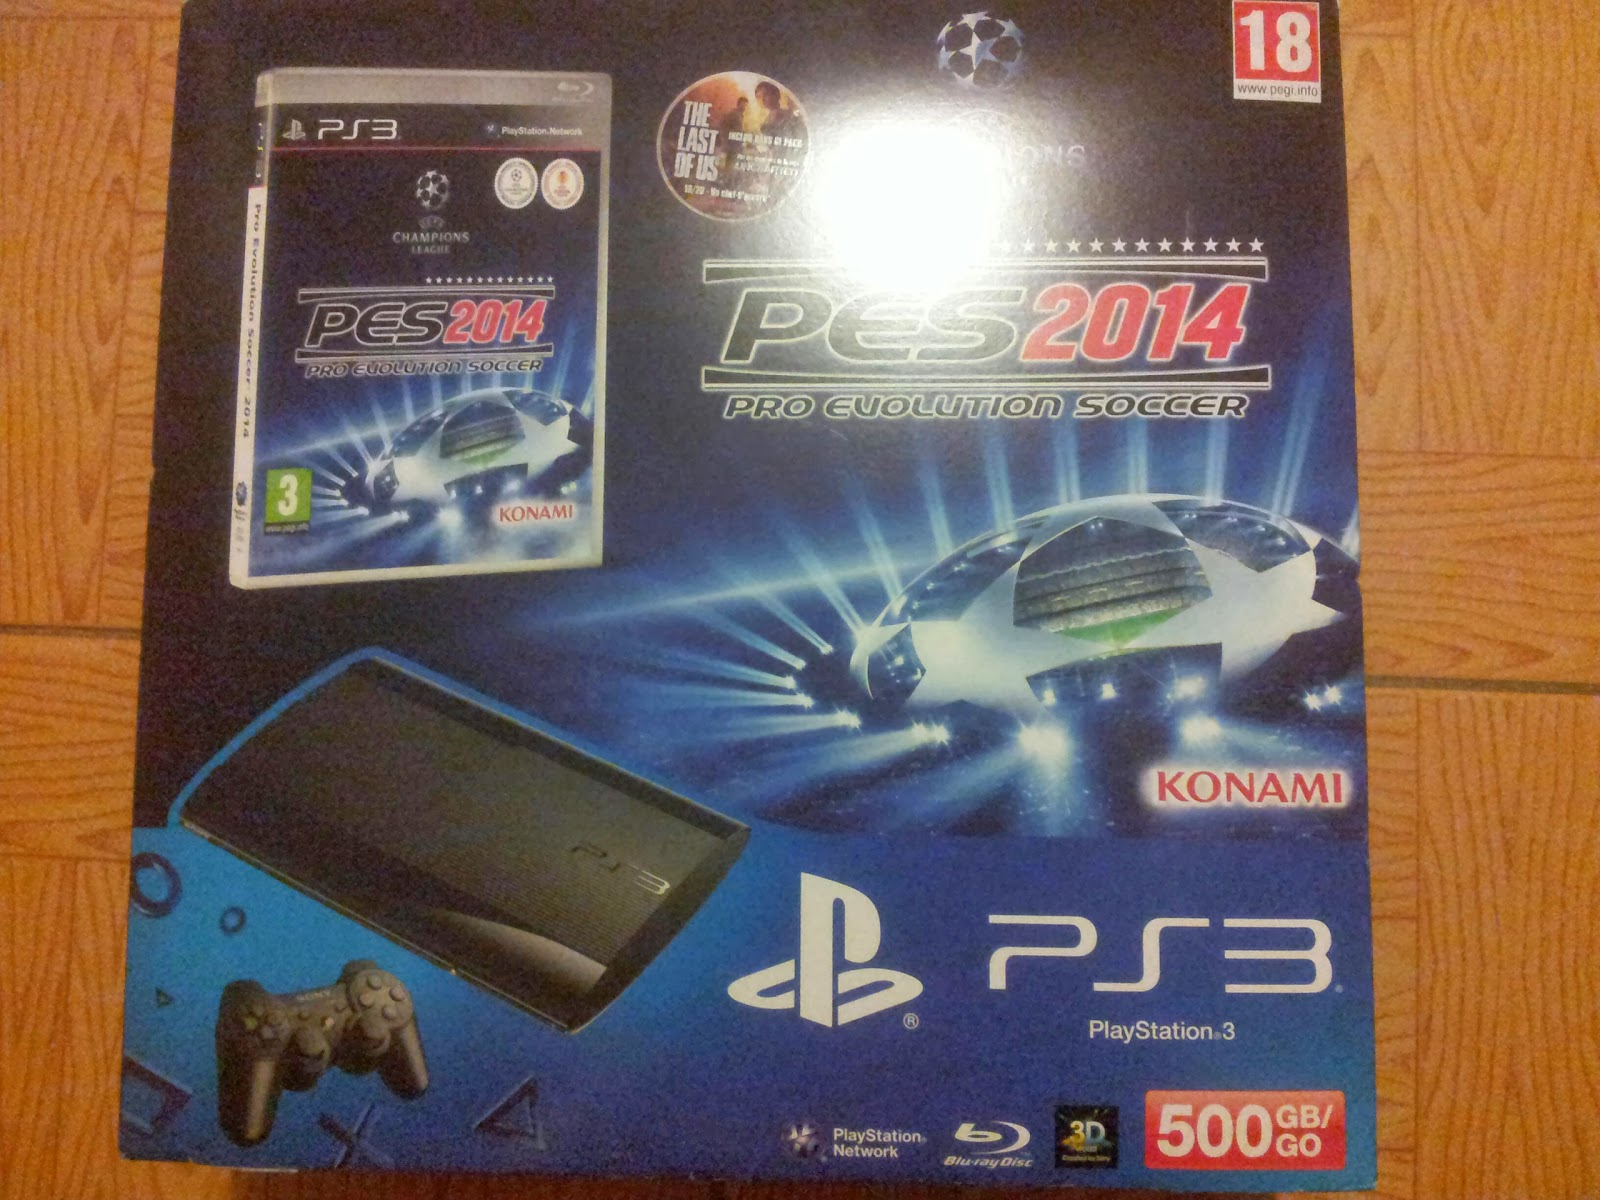 Arrivage playstation 3 ultra slim 500go the last of us - Ma ps3 ultra slim ne lit plus les jeux ...